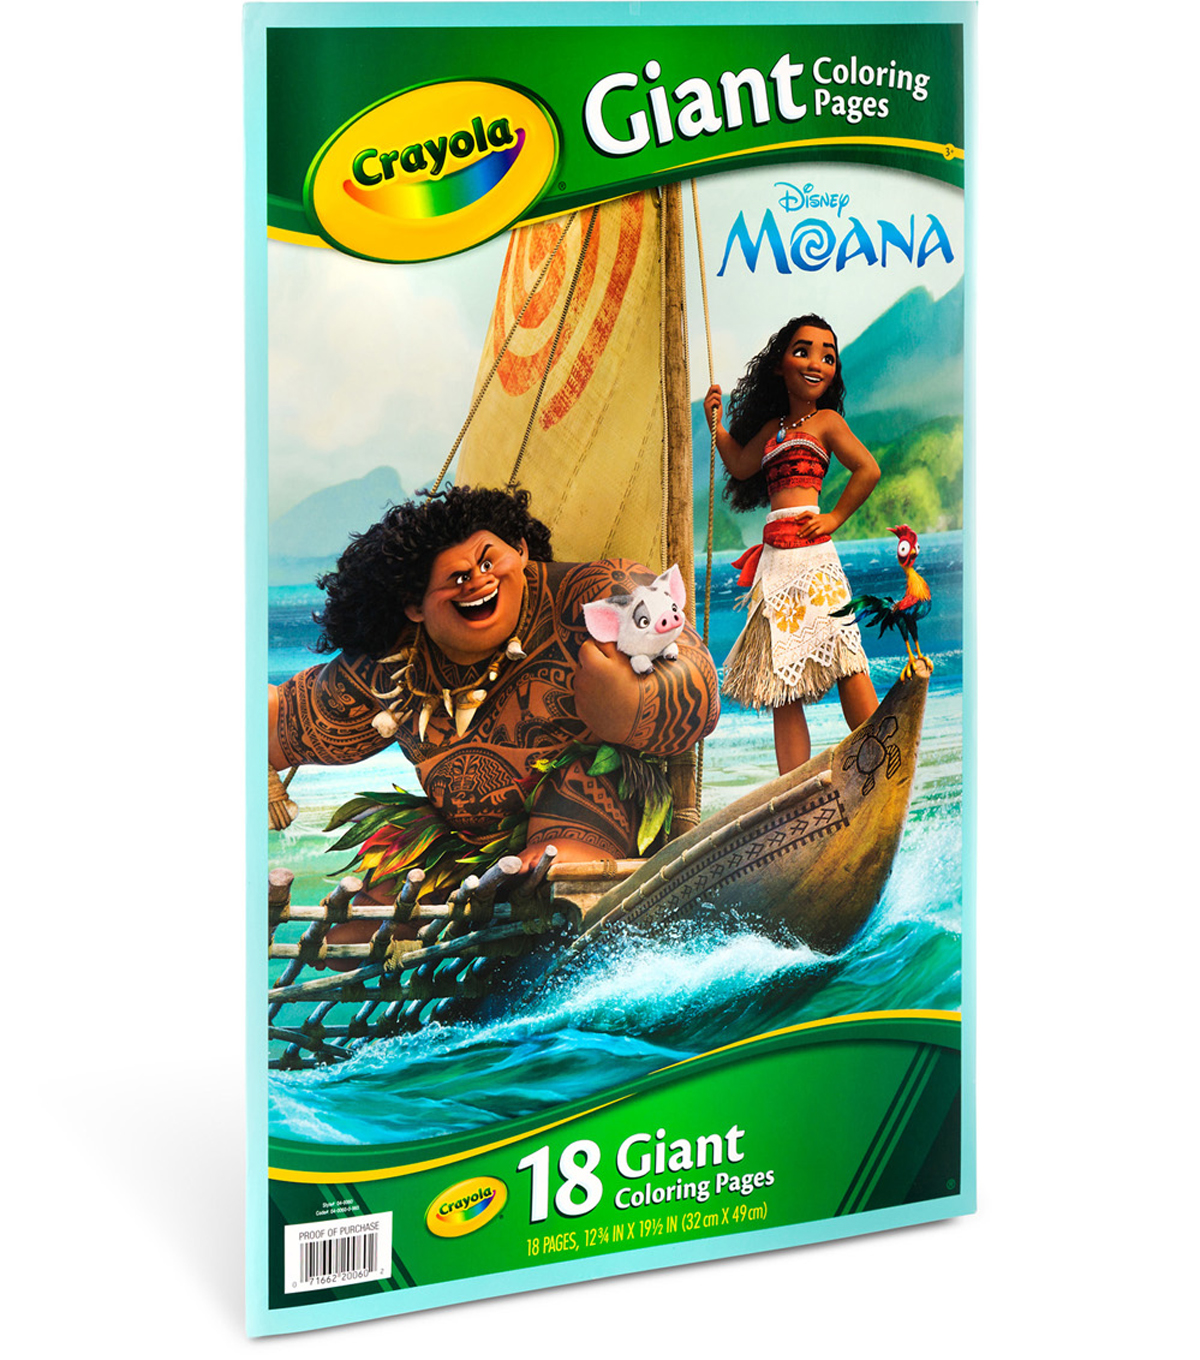 Crayola Giant Coloring Pages-Moana | JOANN